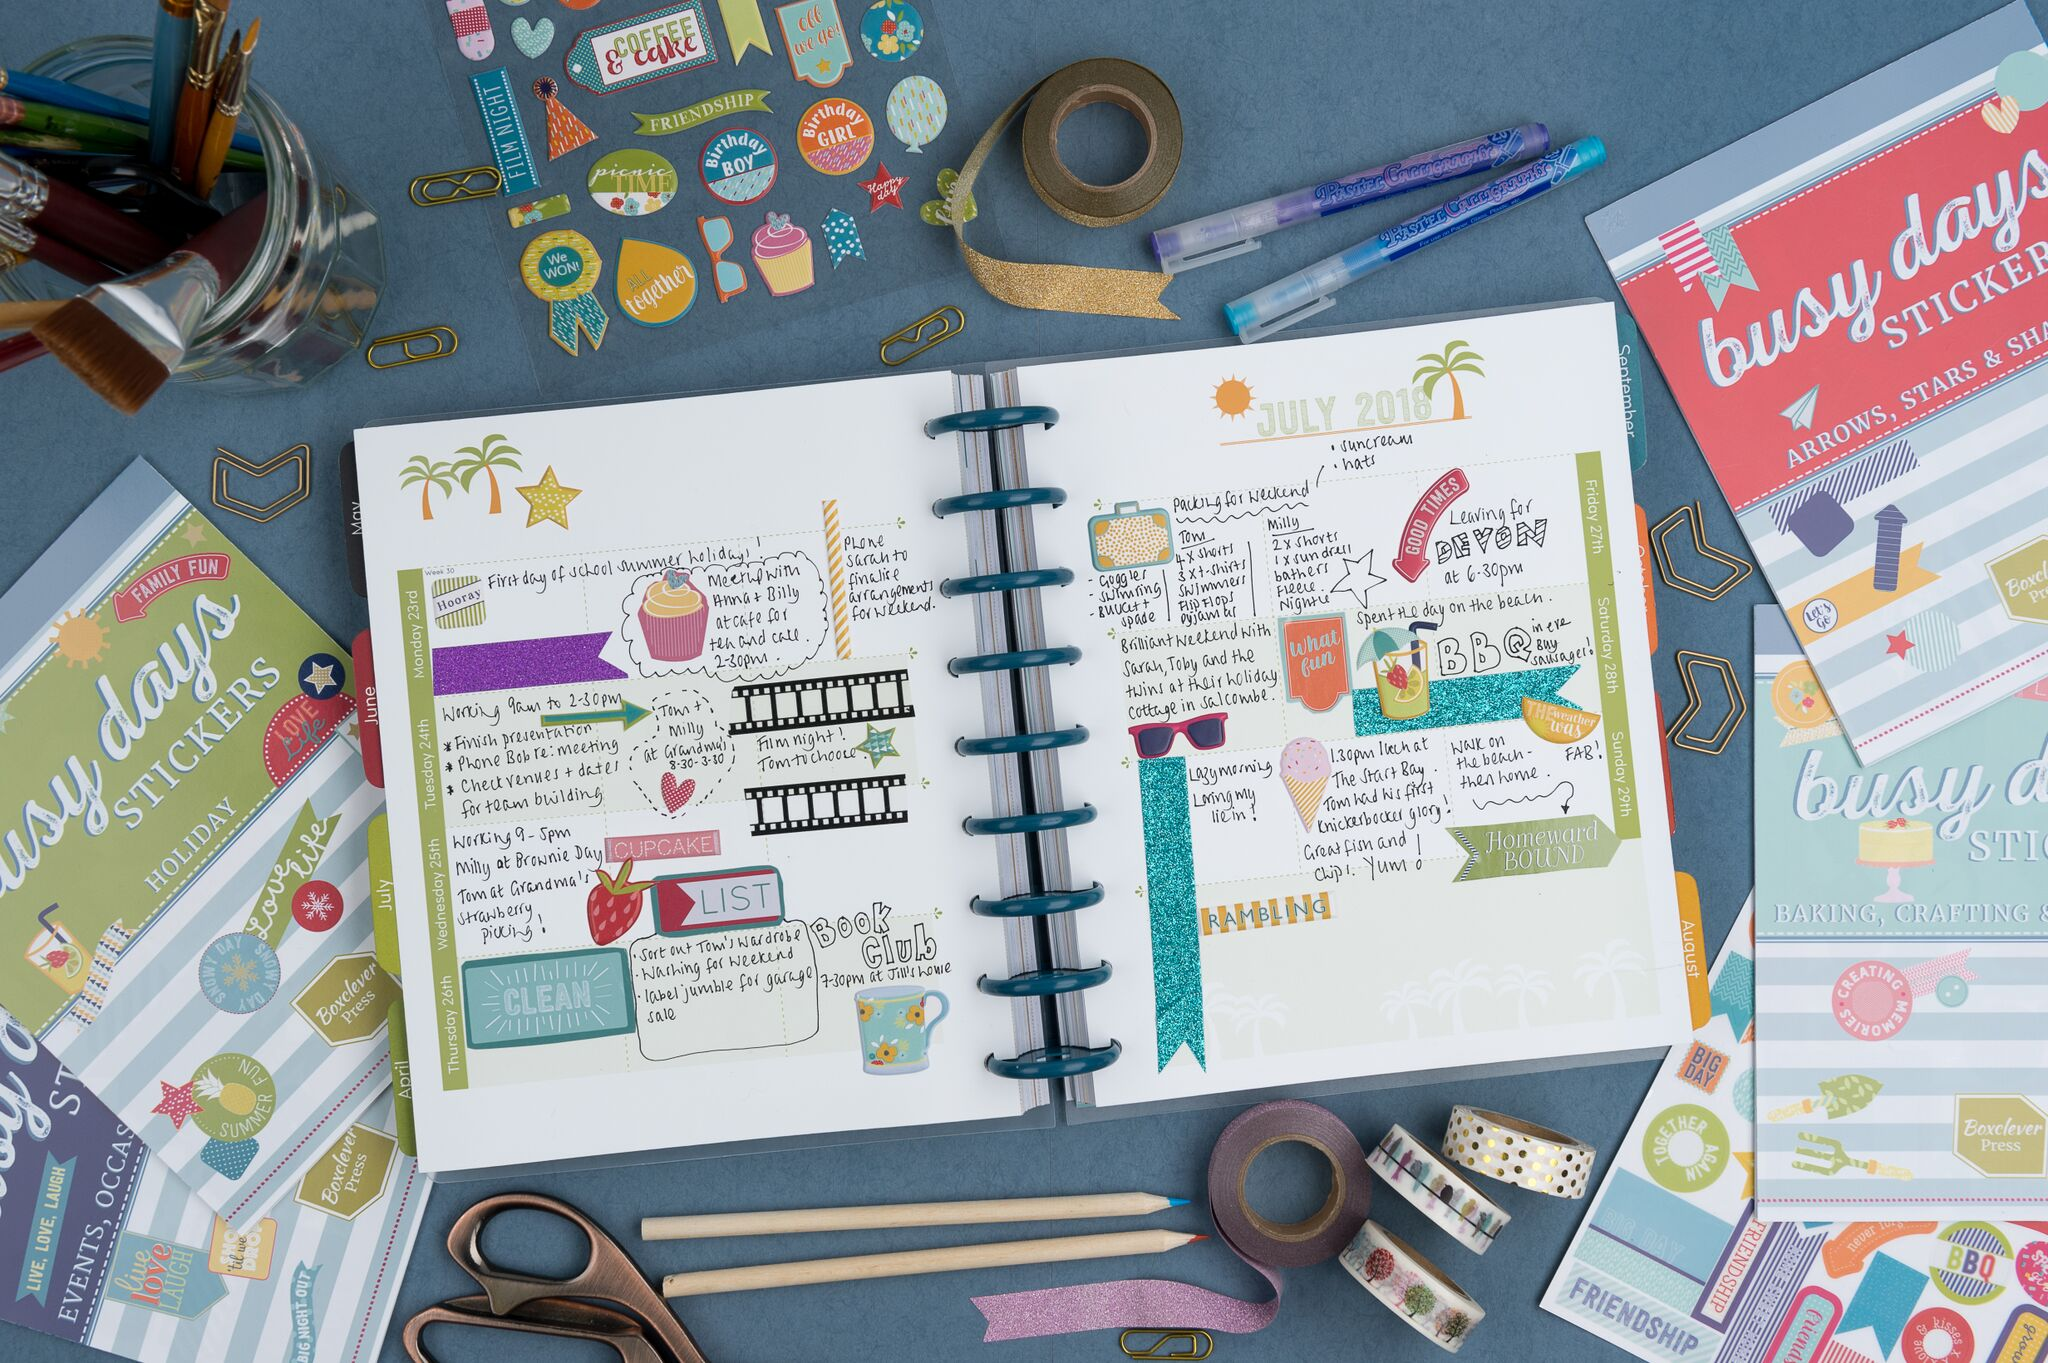 Busy Days Planner from Boxclever Press